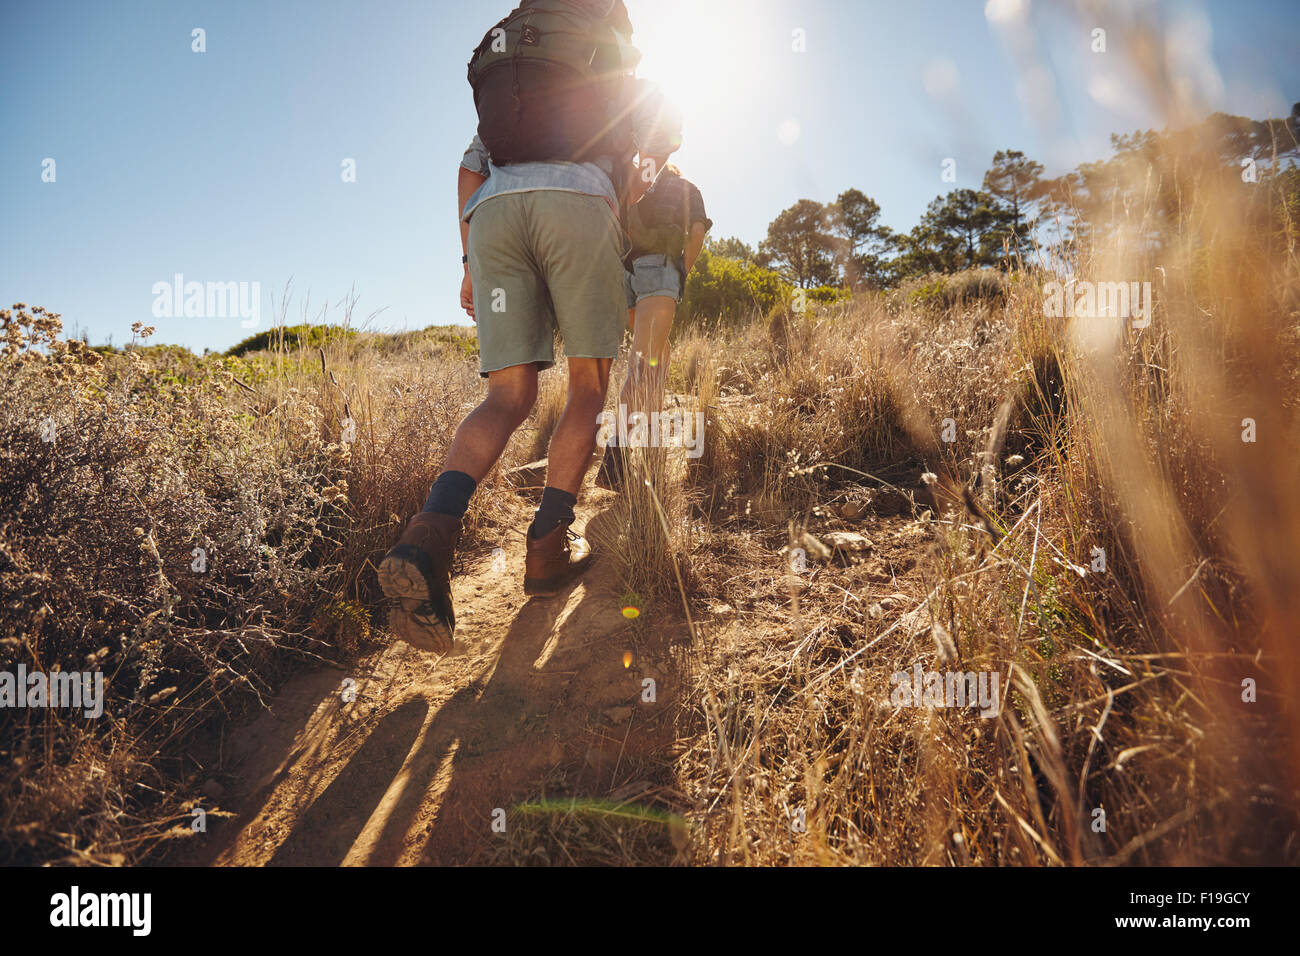 Low angle view of two young people climbing uphill on a mountain. Couple on a hiking trip on a sunny day. - Stock Image